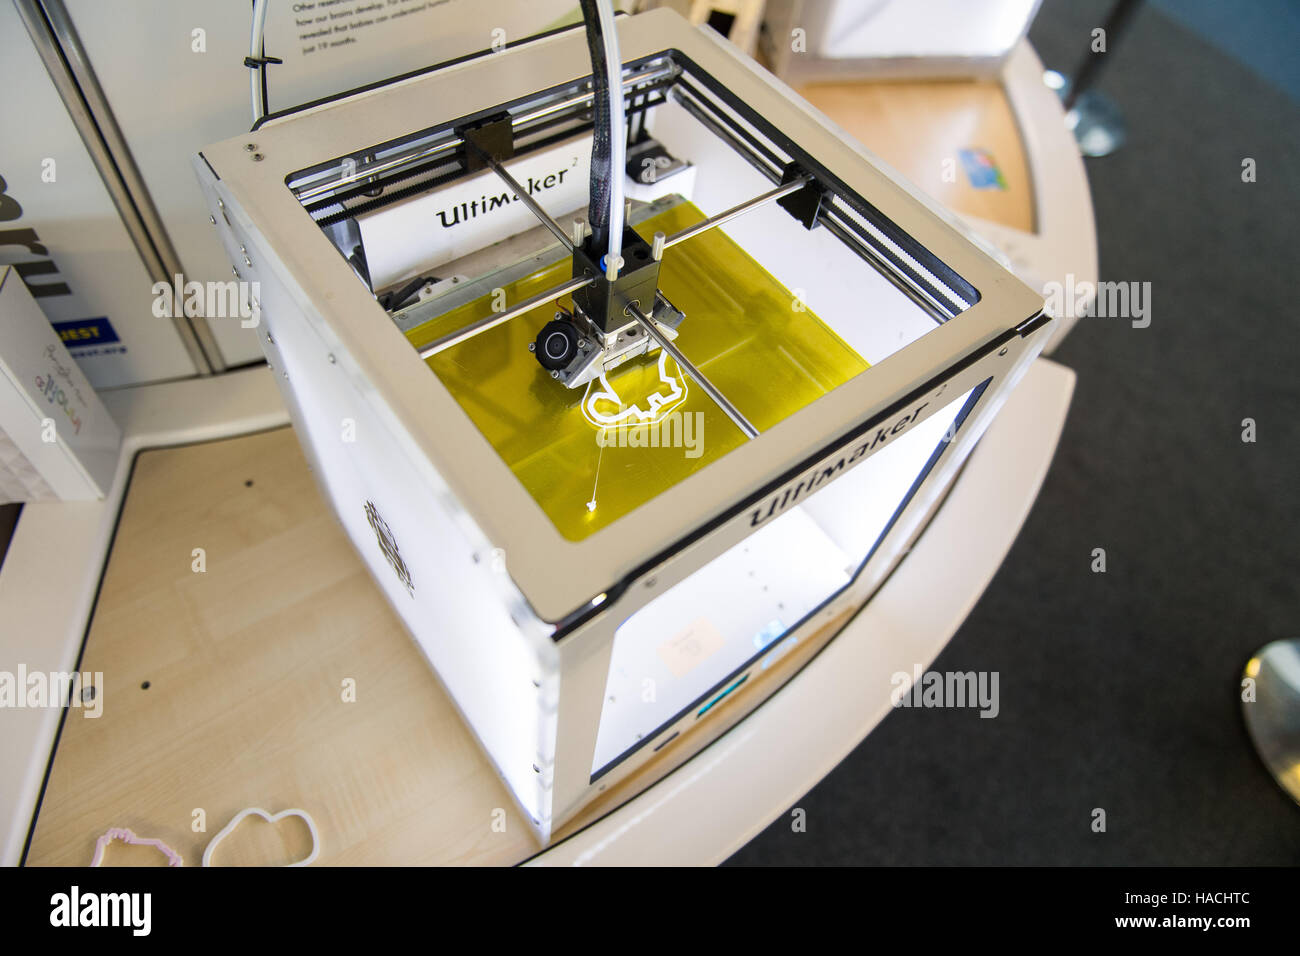 An 'Ultimaker 2' 3D printer, in use printing a cookie cutter - Stock Image